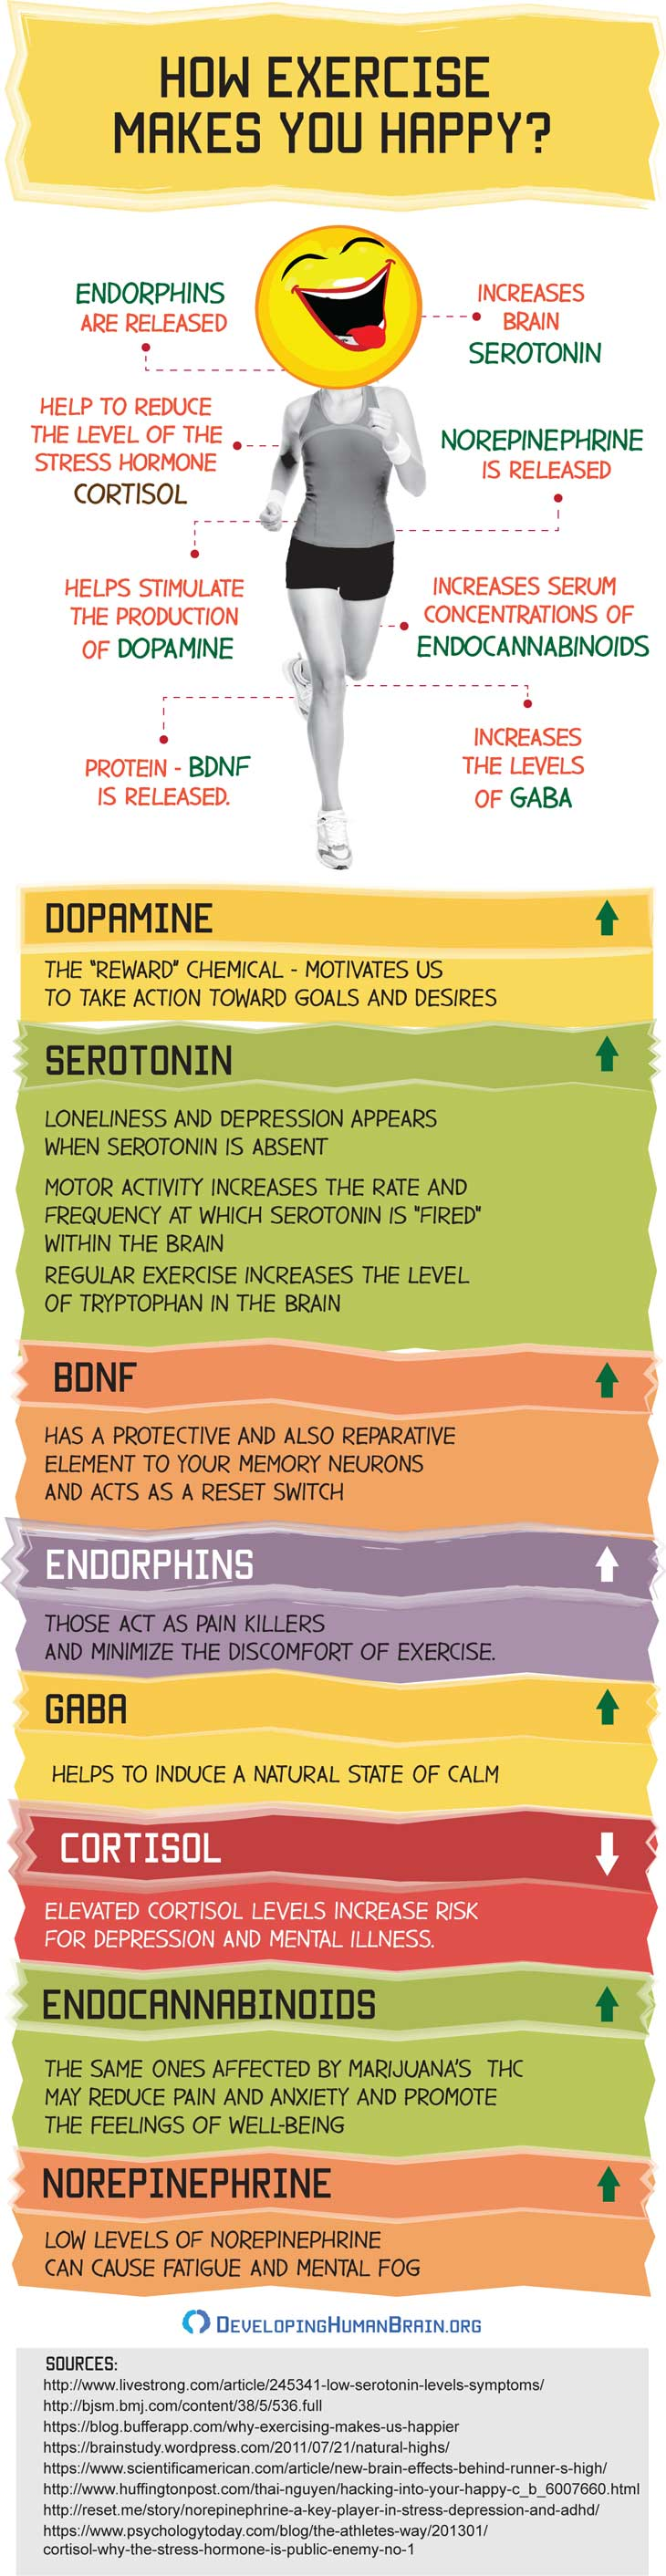 how-exercise-makes-you-happy-infographic